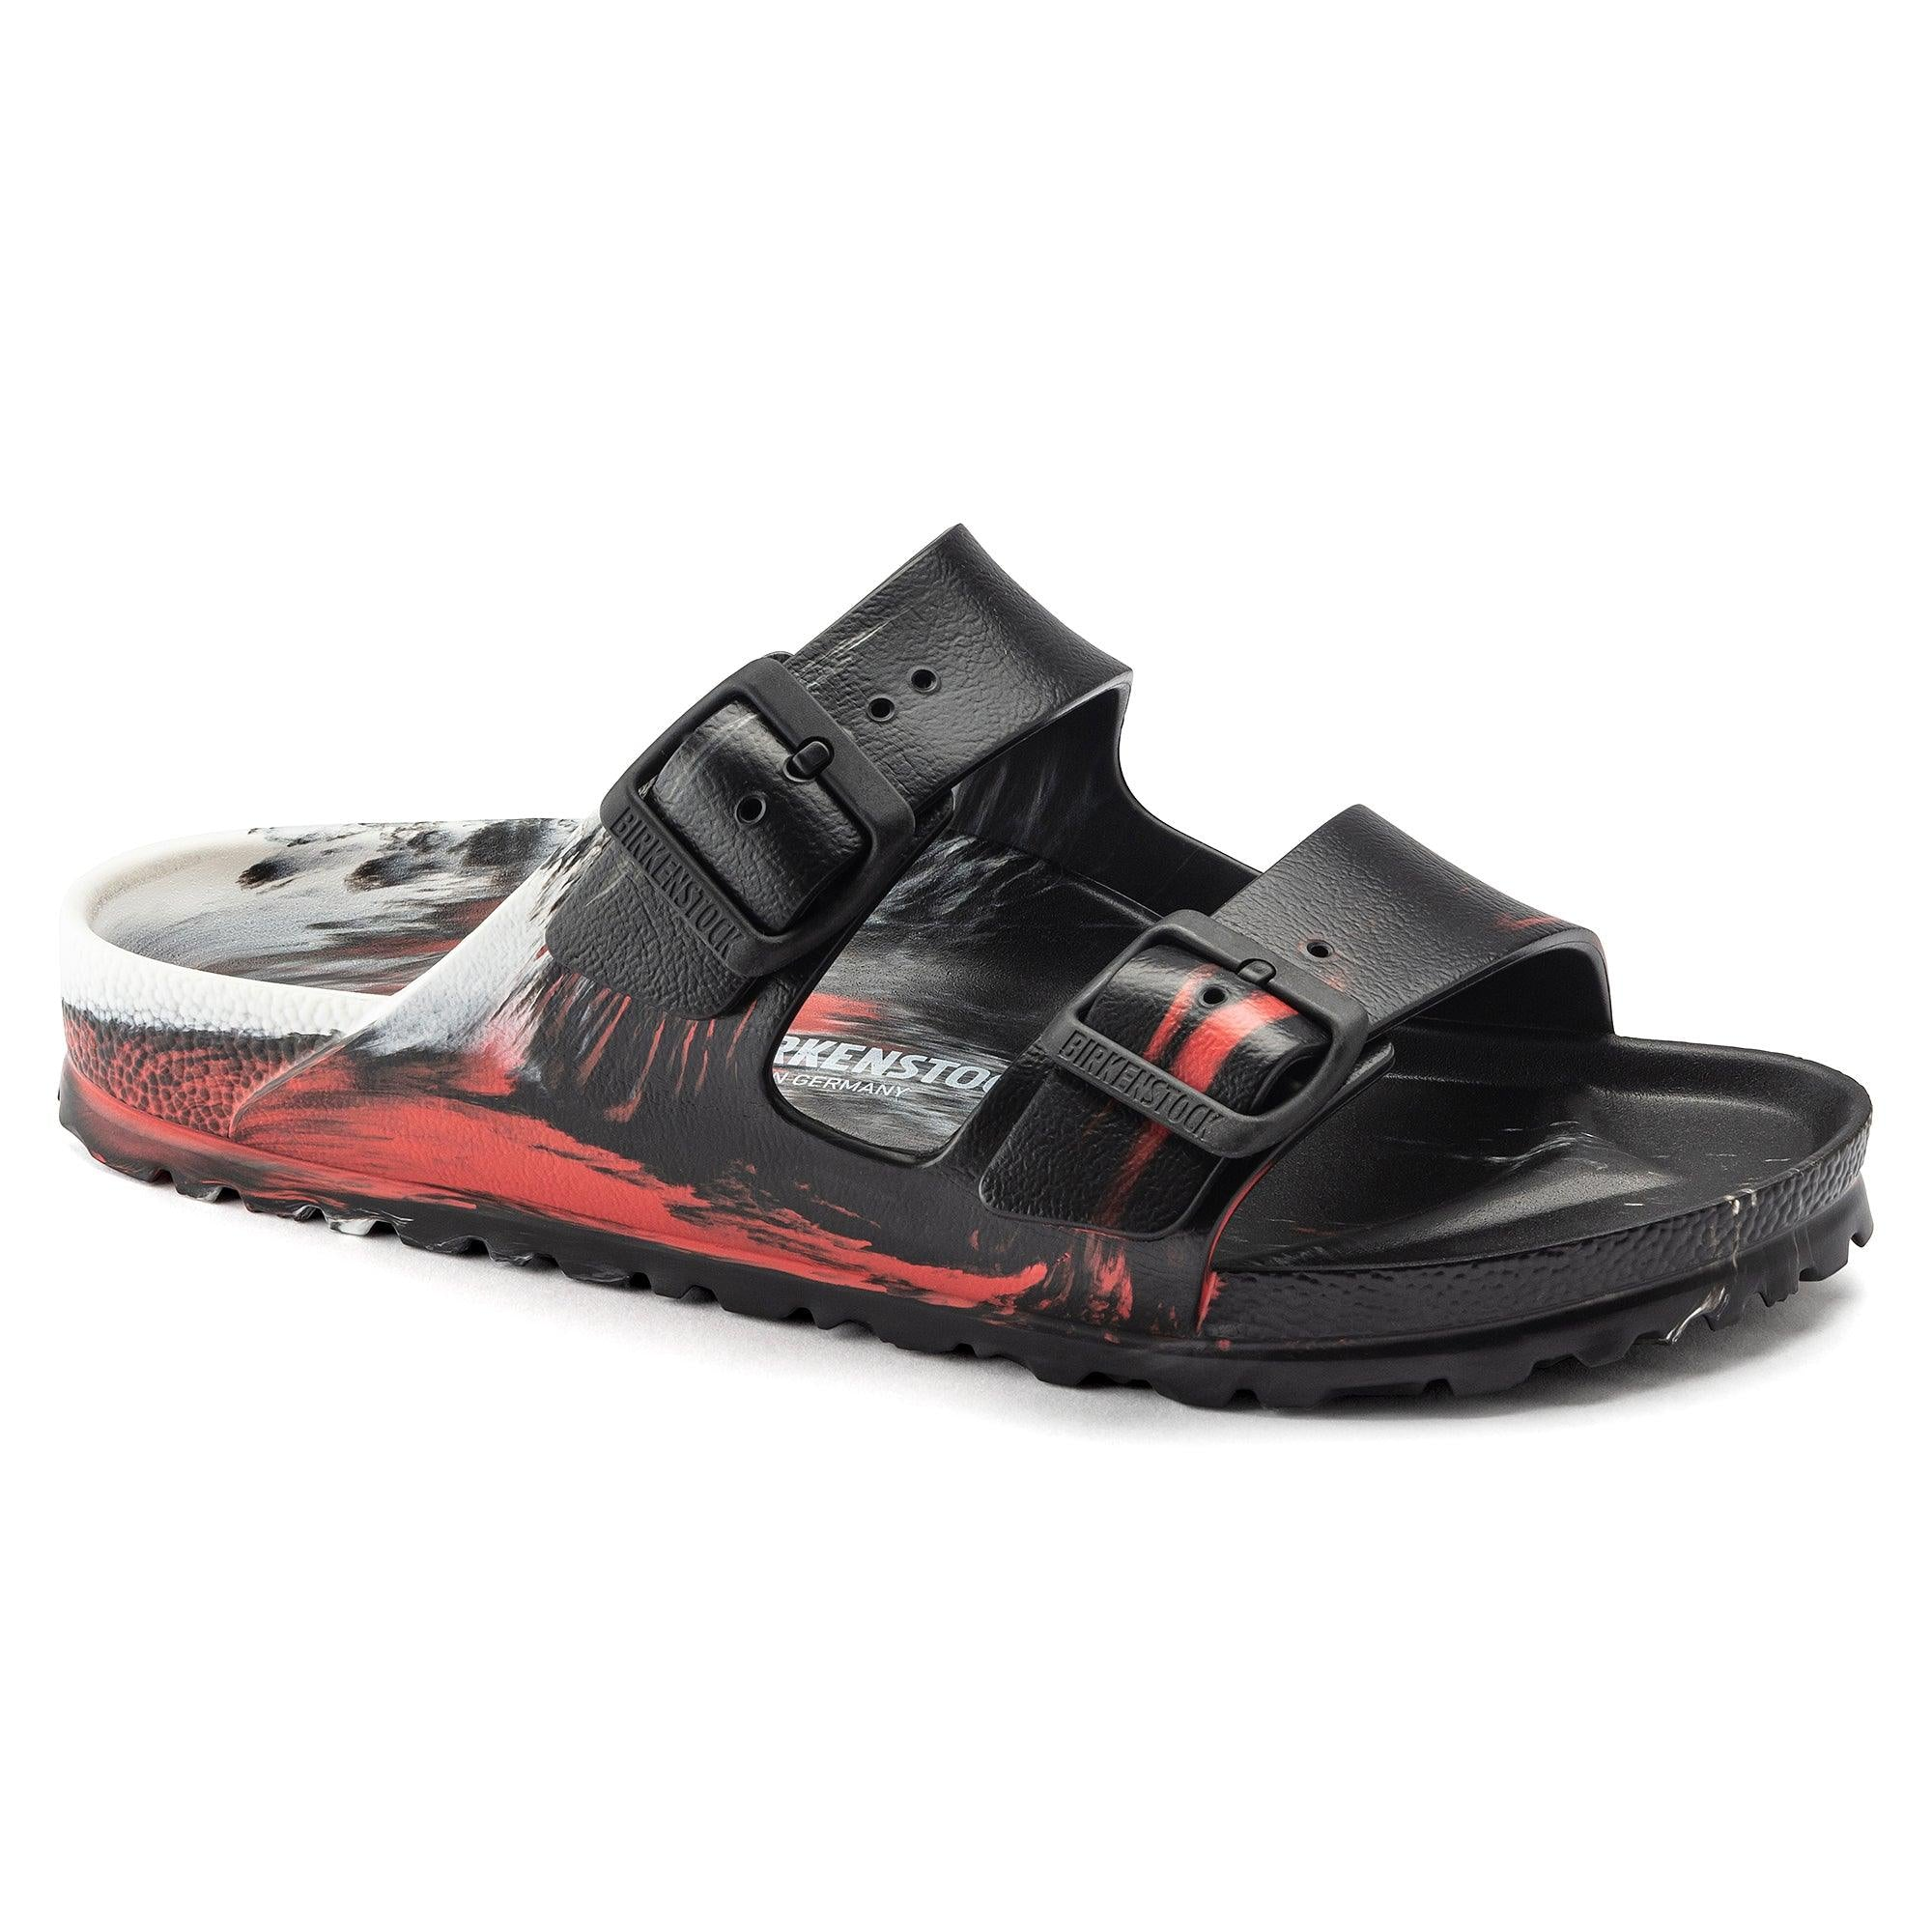 Birkenstock Women's Arizona Essentials EVA Sandals - Multi Black